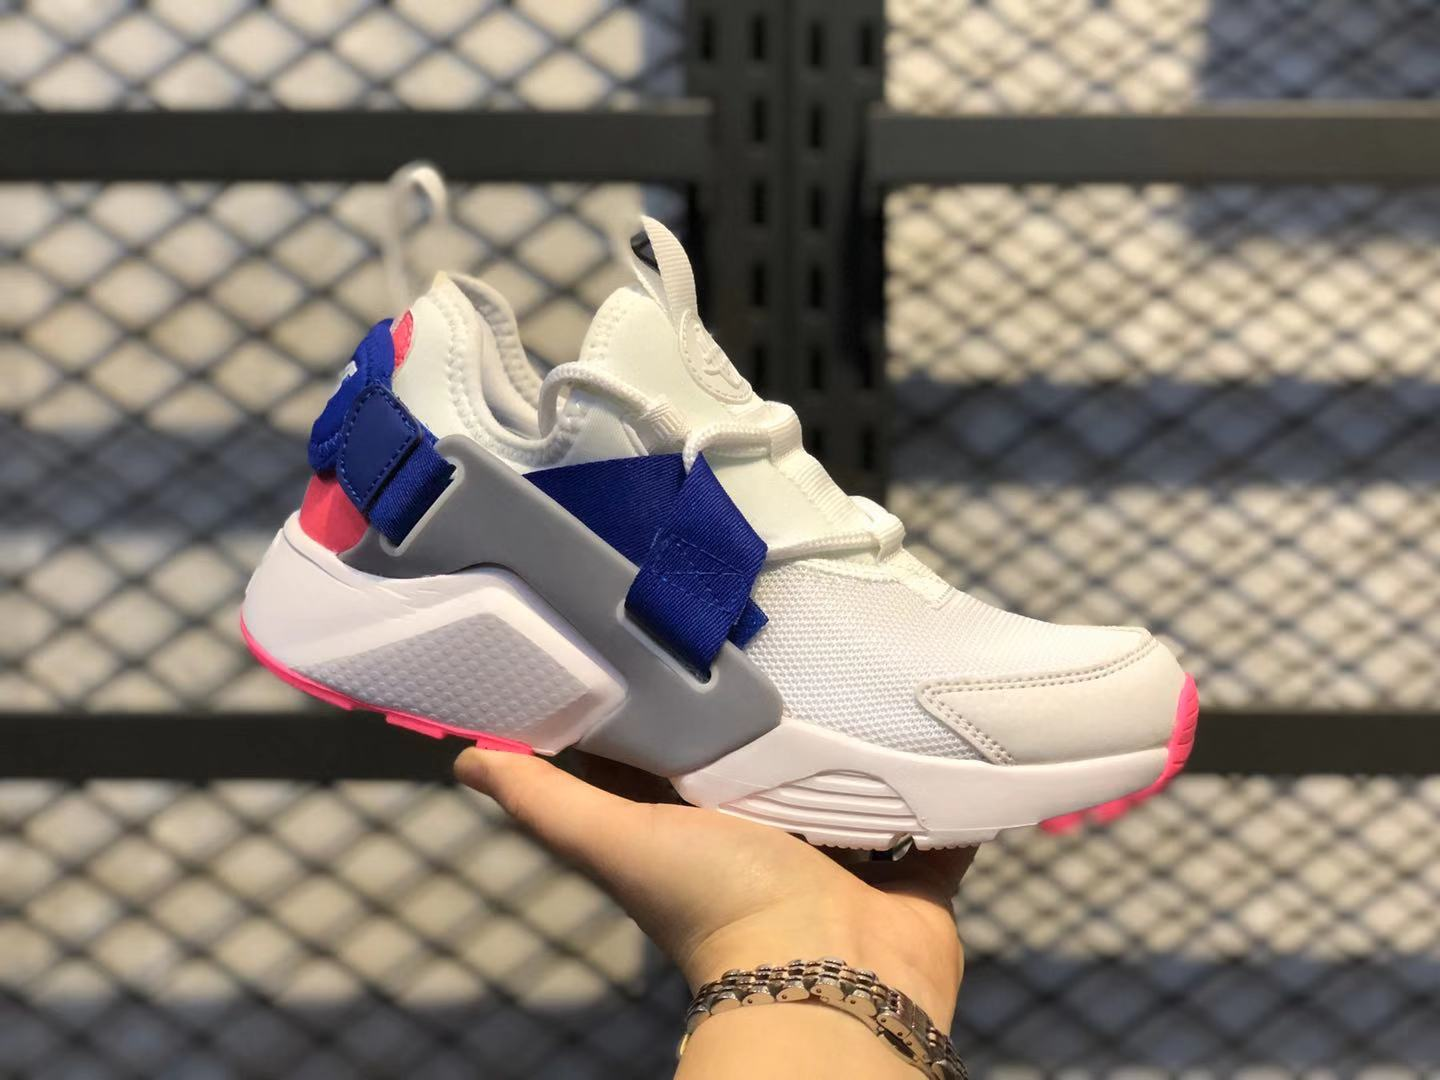 Nike Air Huarache City Low White/Hot Punch-Loyal Blue On Sale AH6804-101